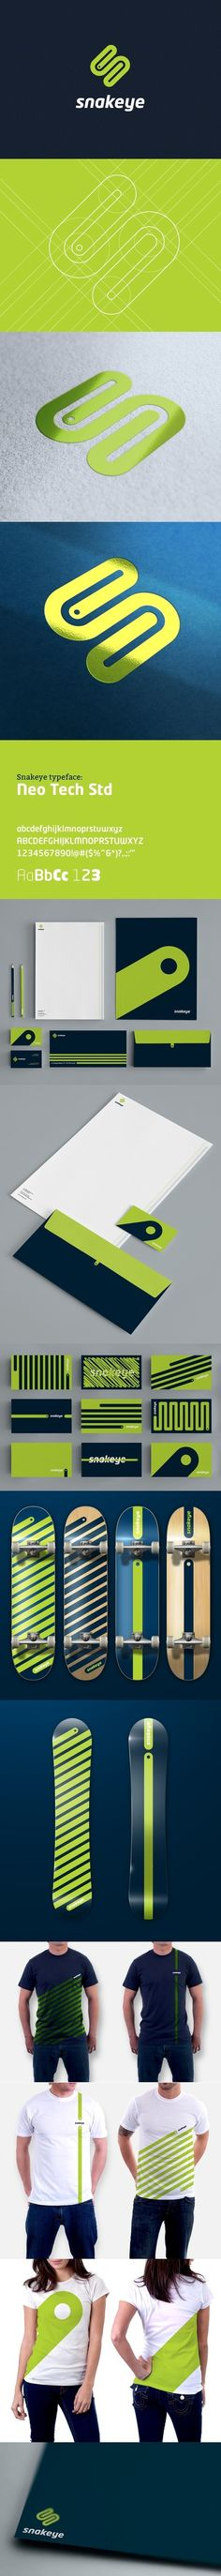 Snake eye identiry Design - Branding | timms brand design | Scoop.it